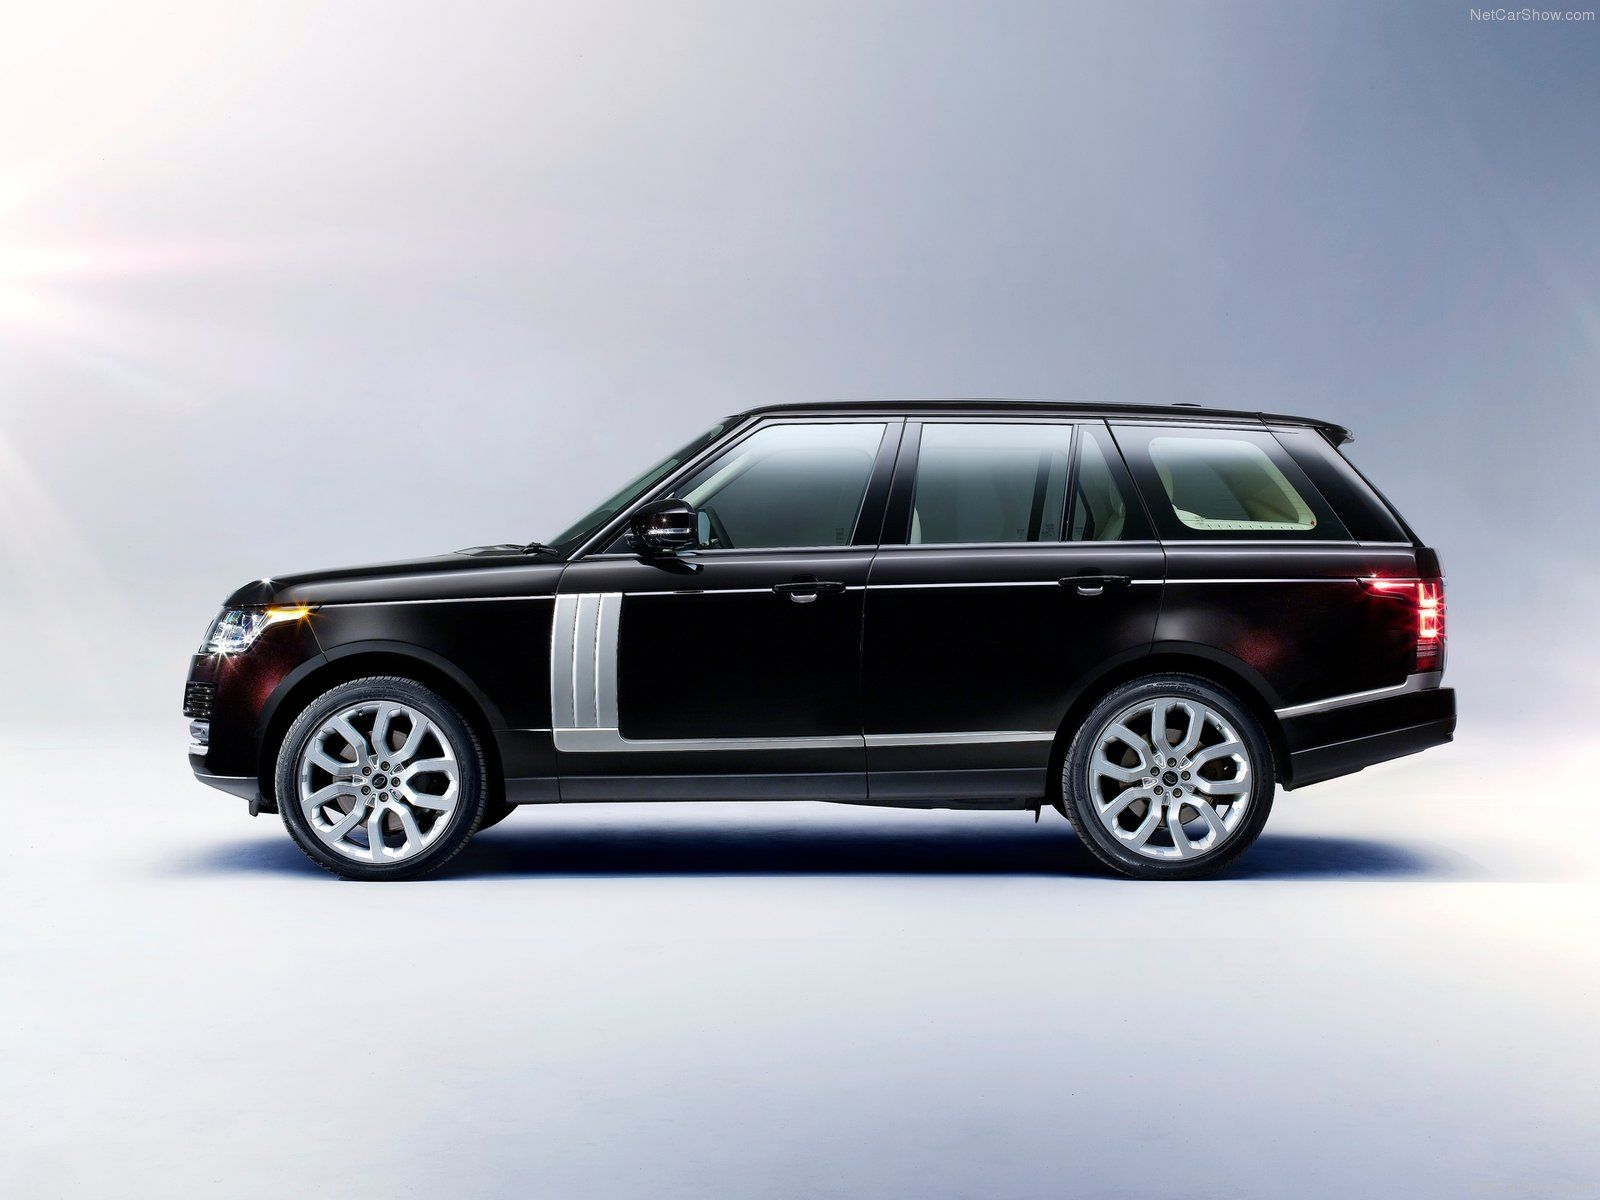 2013 Range Rover Vogue available for rental in Cote d Azur and